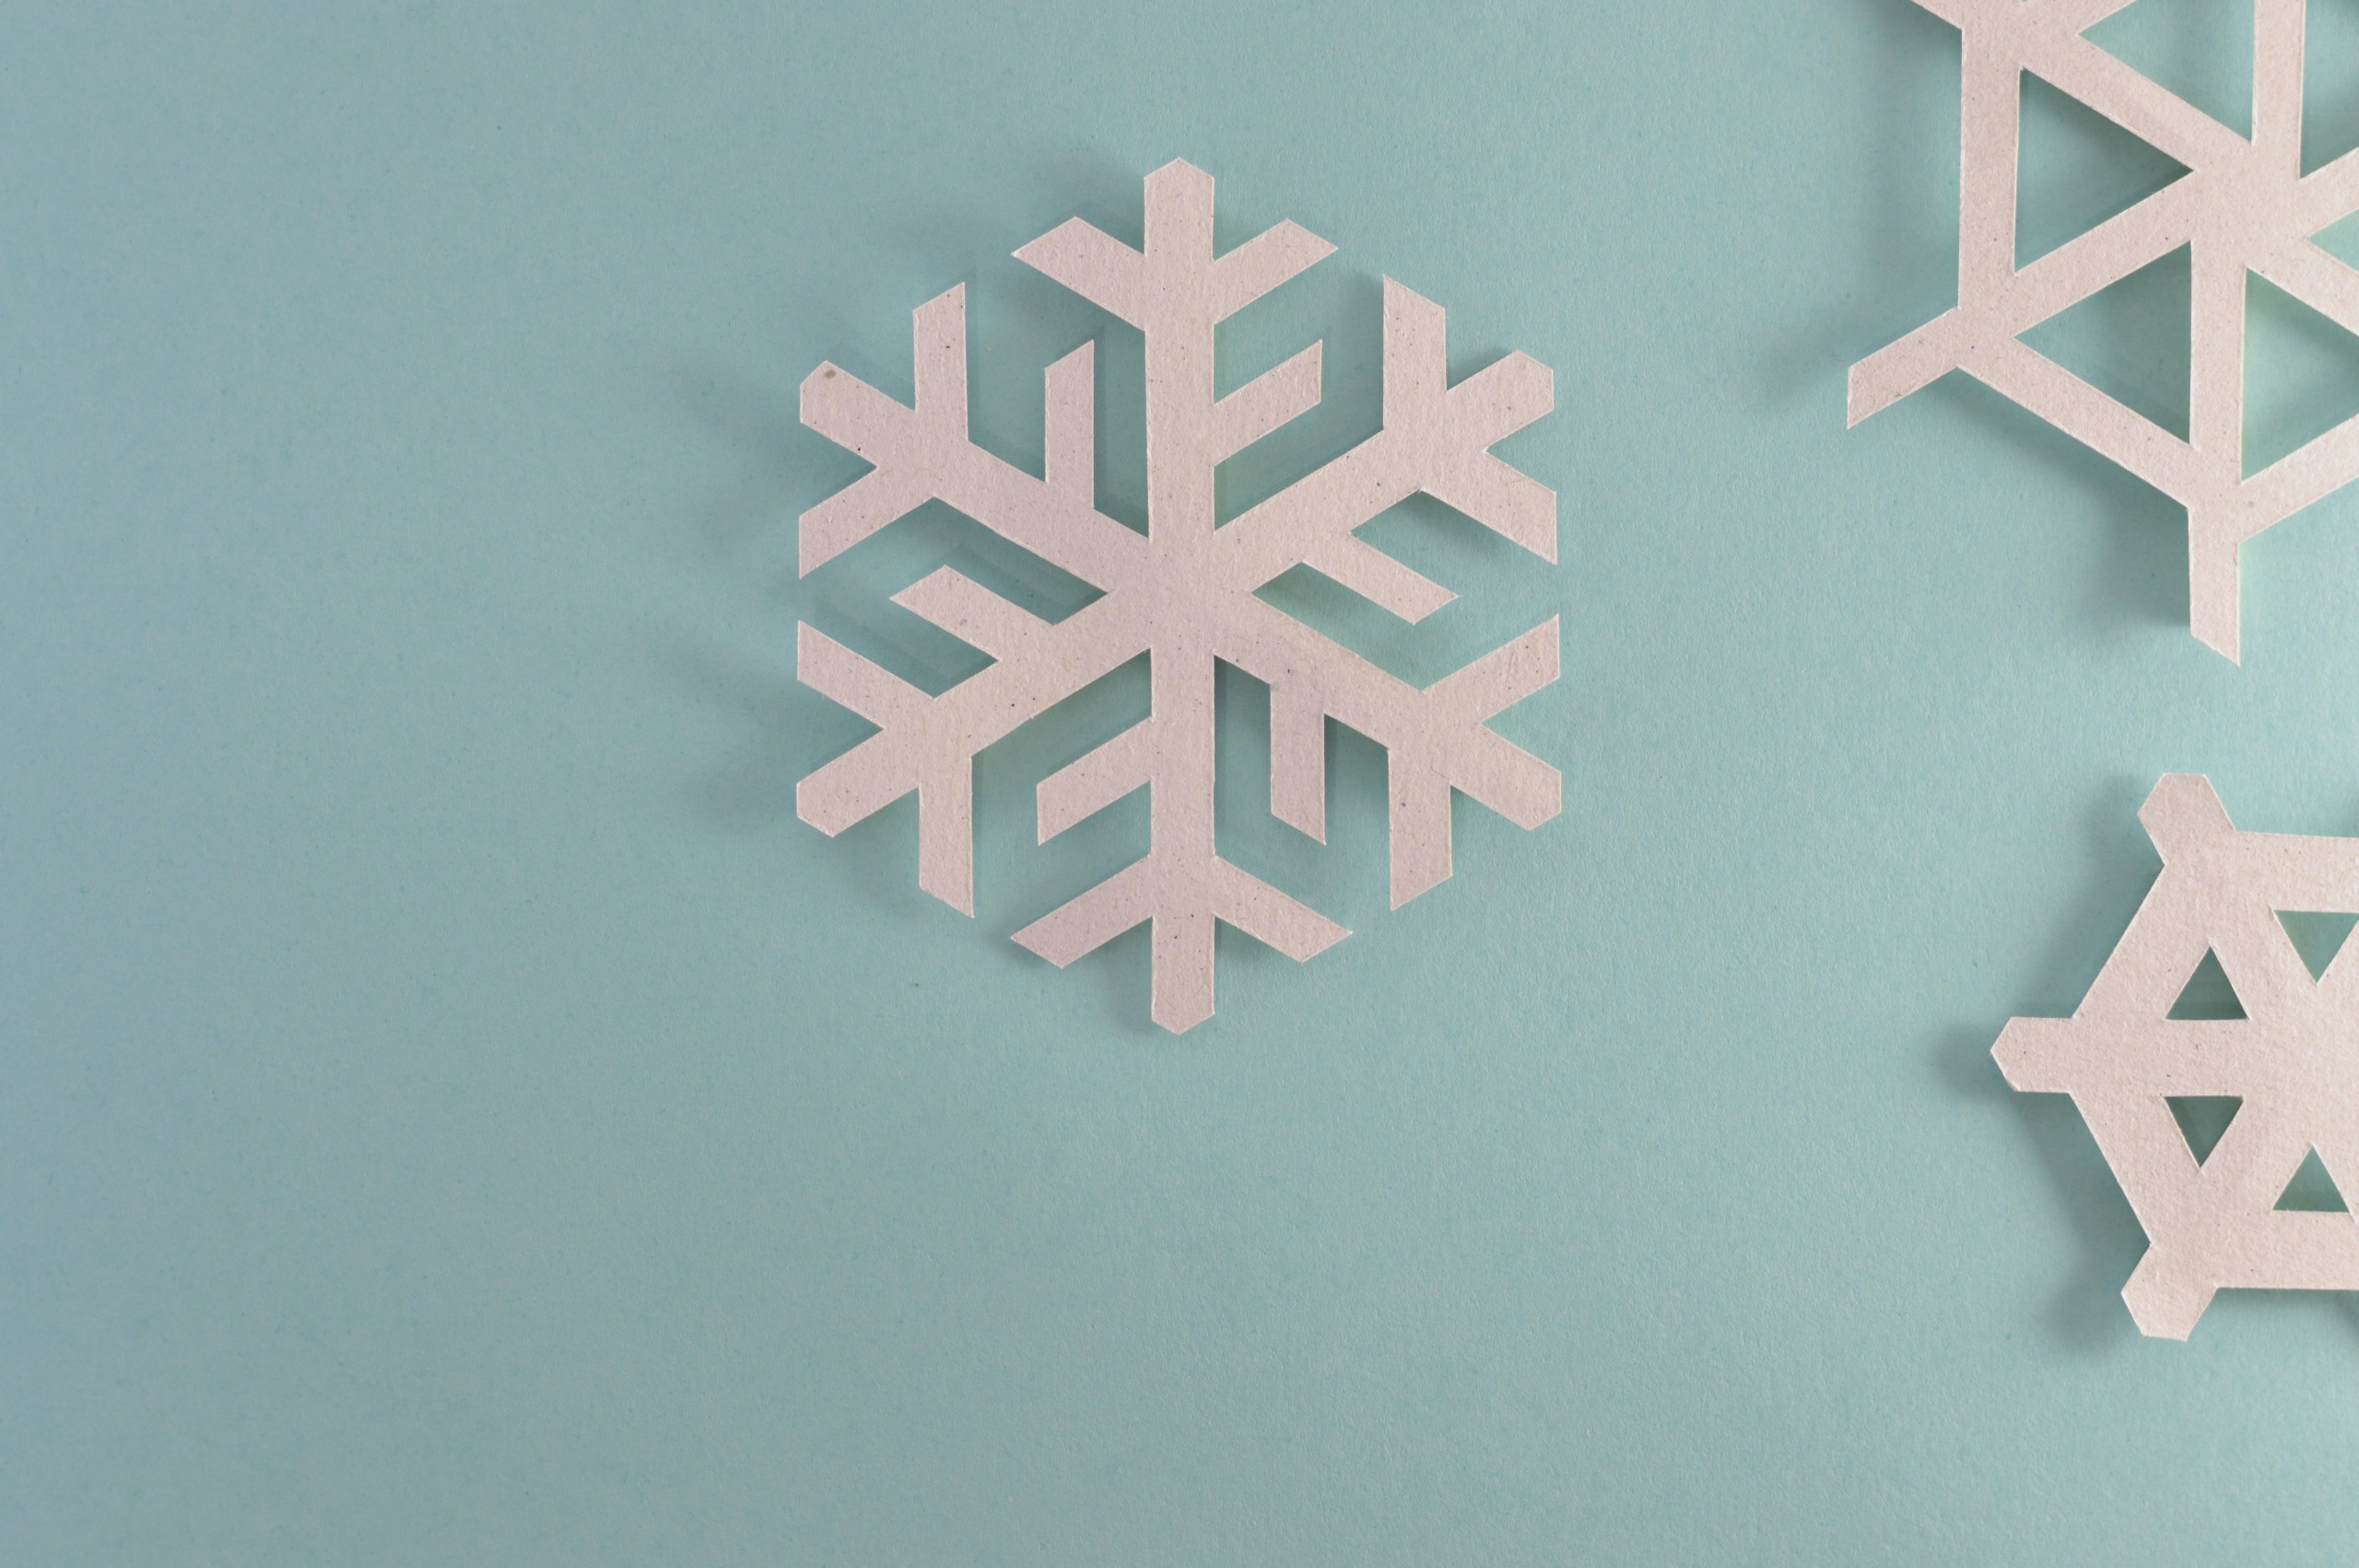 Paper Snowflakes on light blue background.